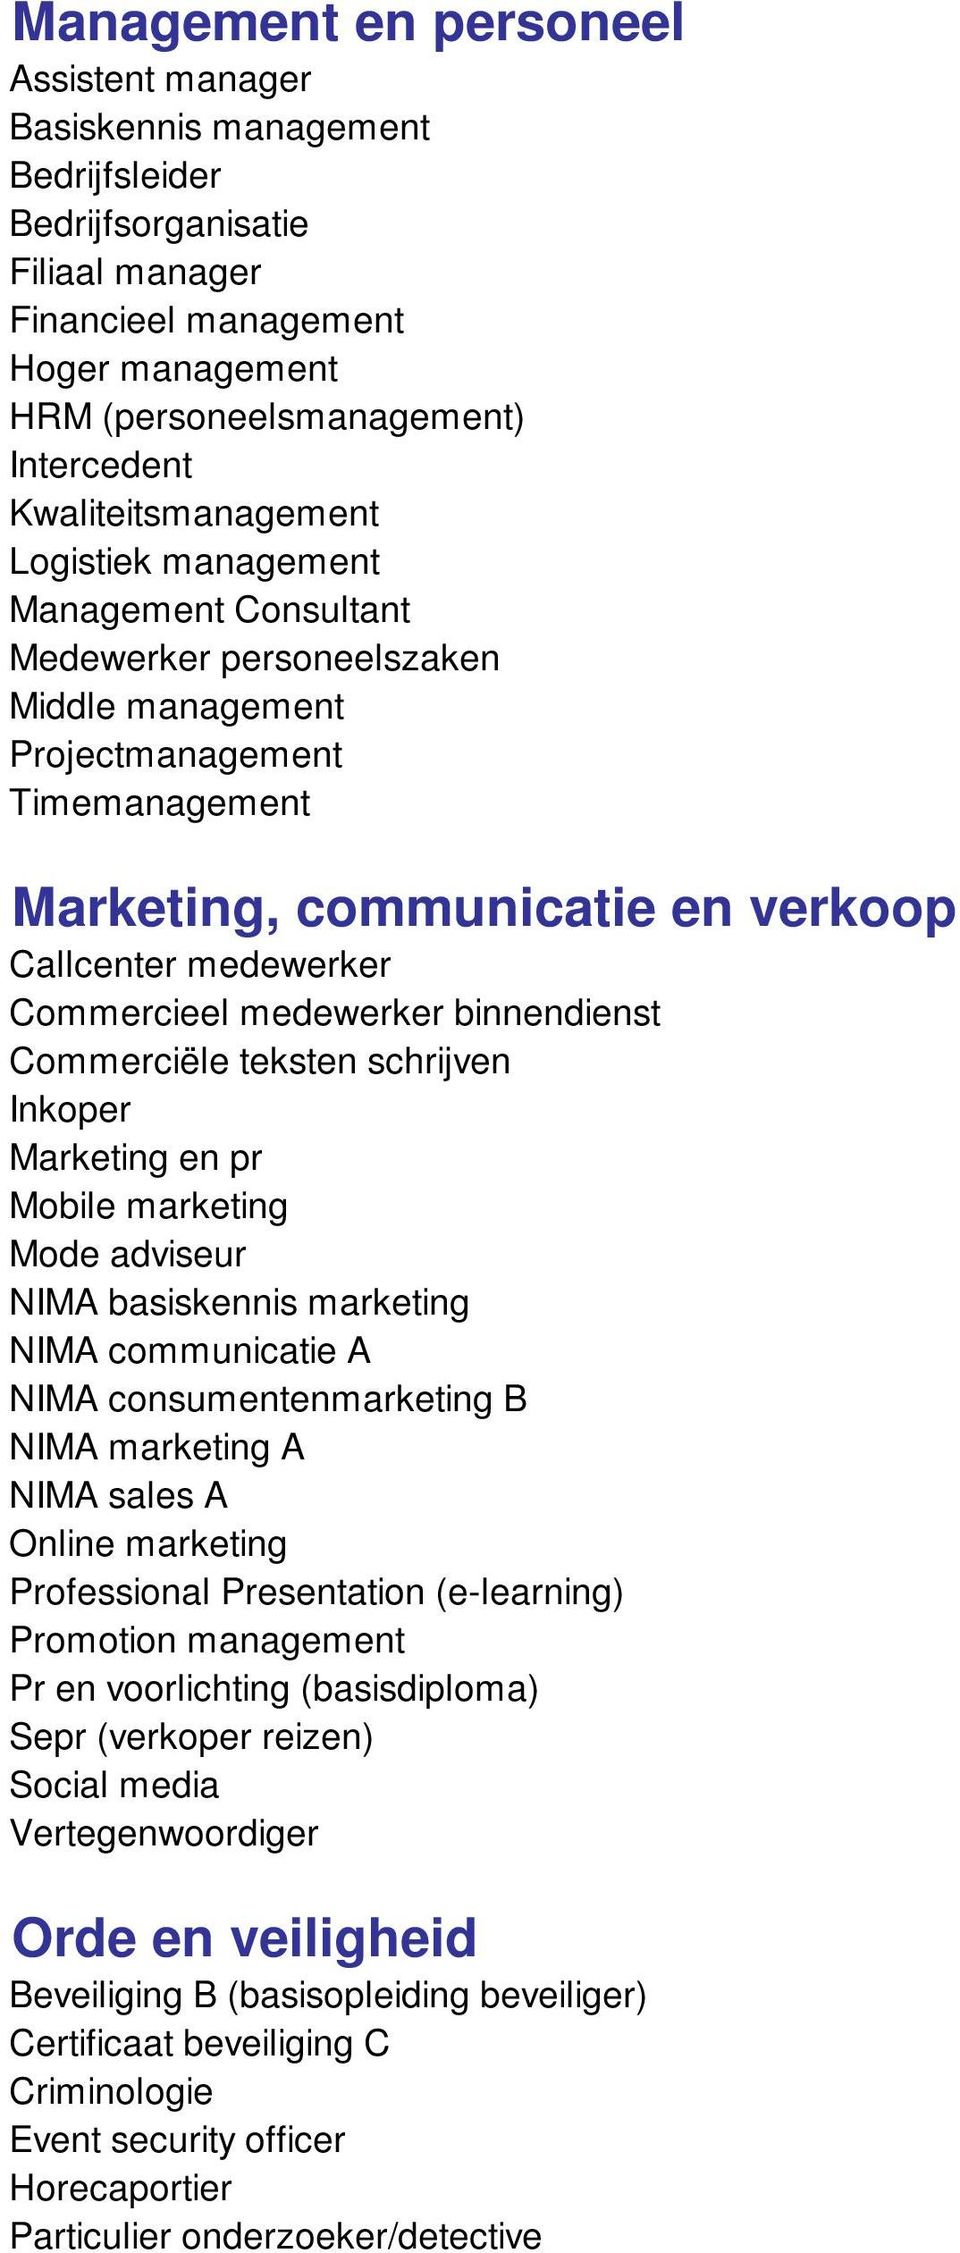 Commercieel medewerker binnendienst Commerciële teksten schrijven Inkoper Marketing en pr Mobile marketing Mode adviseur NIMA basiskennis marketing NIMA communicatie A NIMA consumentenmarketing B